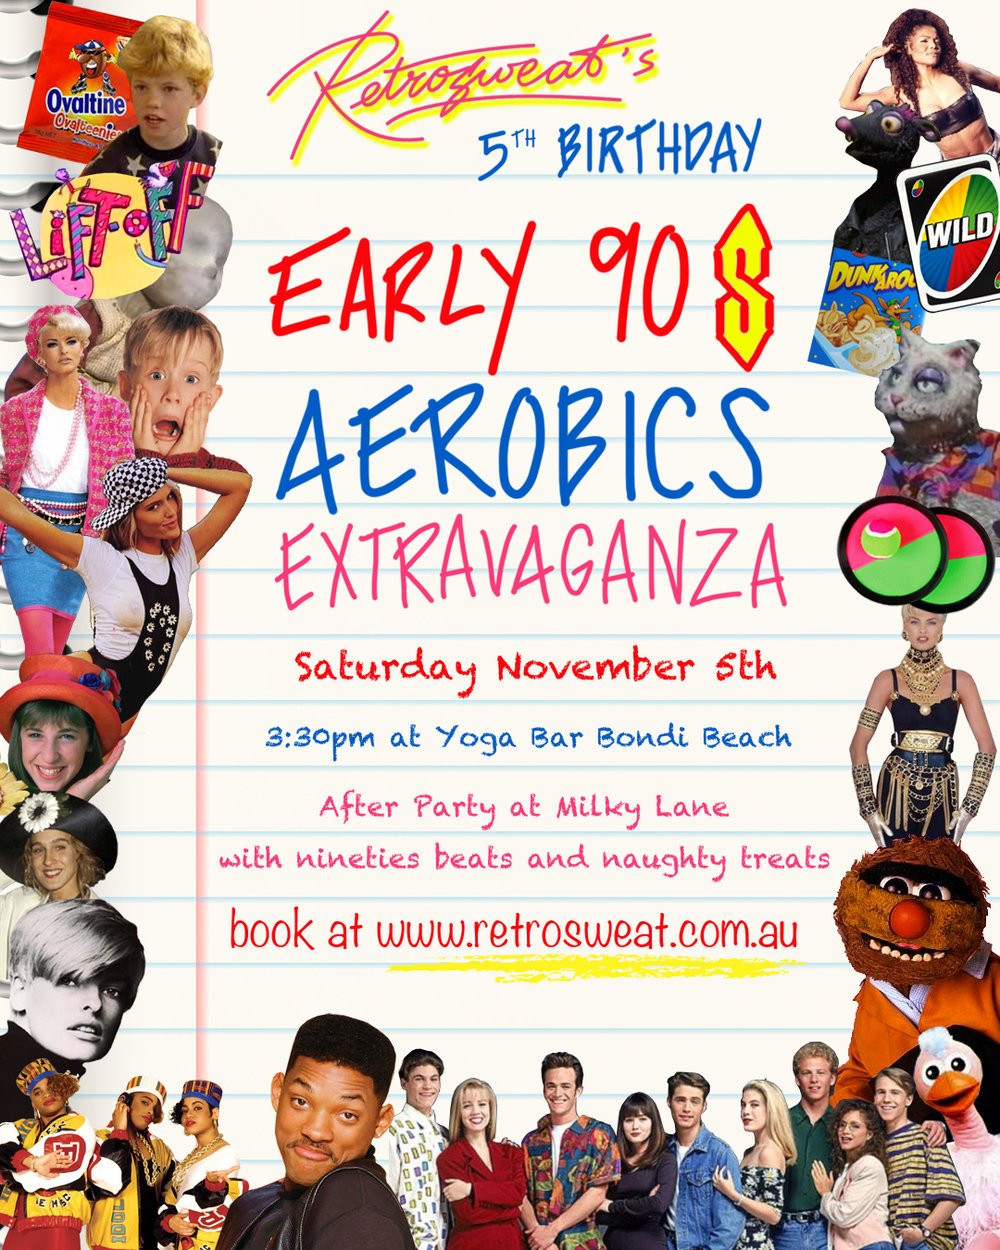 Retrosweat_5th_Birthday_90s_Poster_v2.jpg